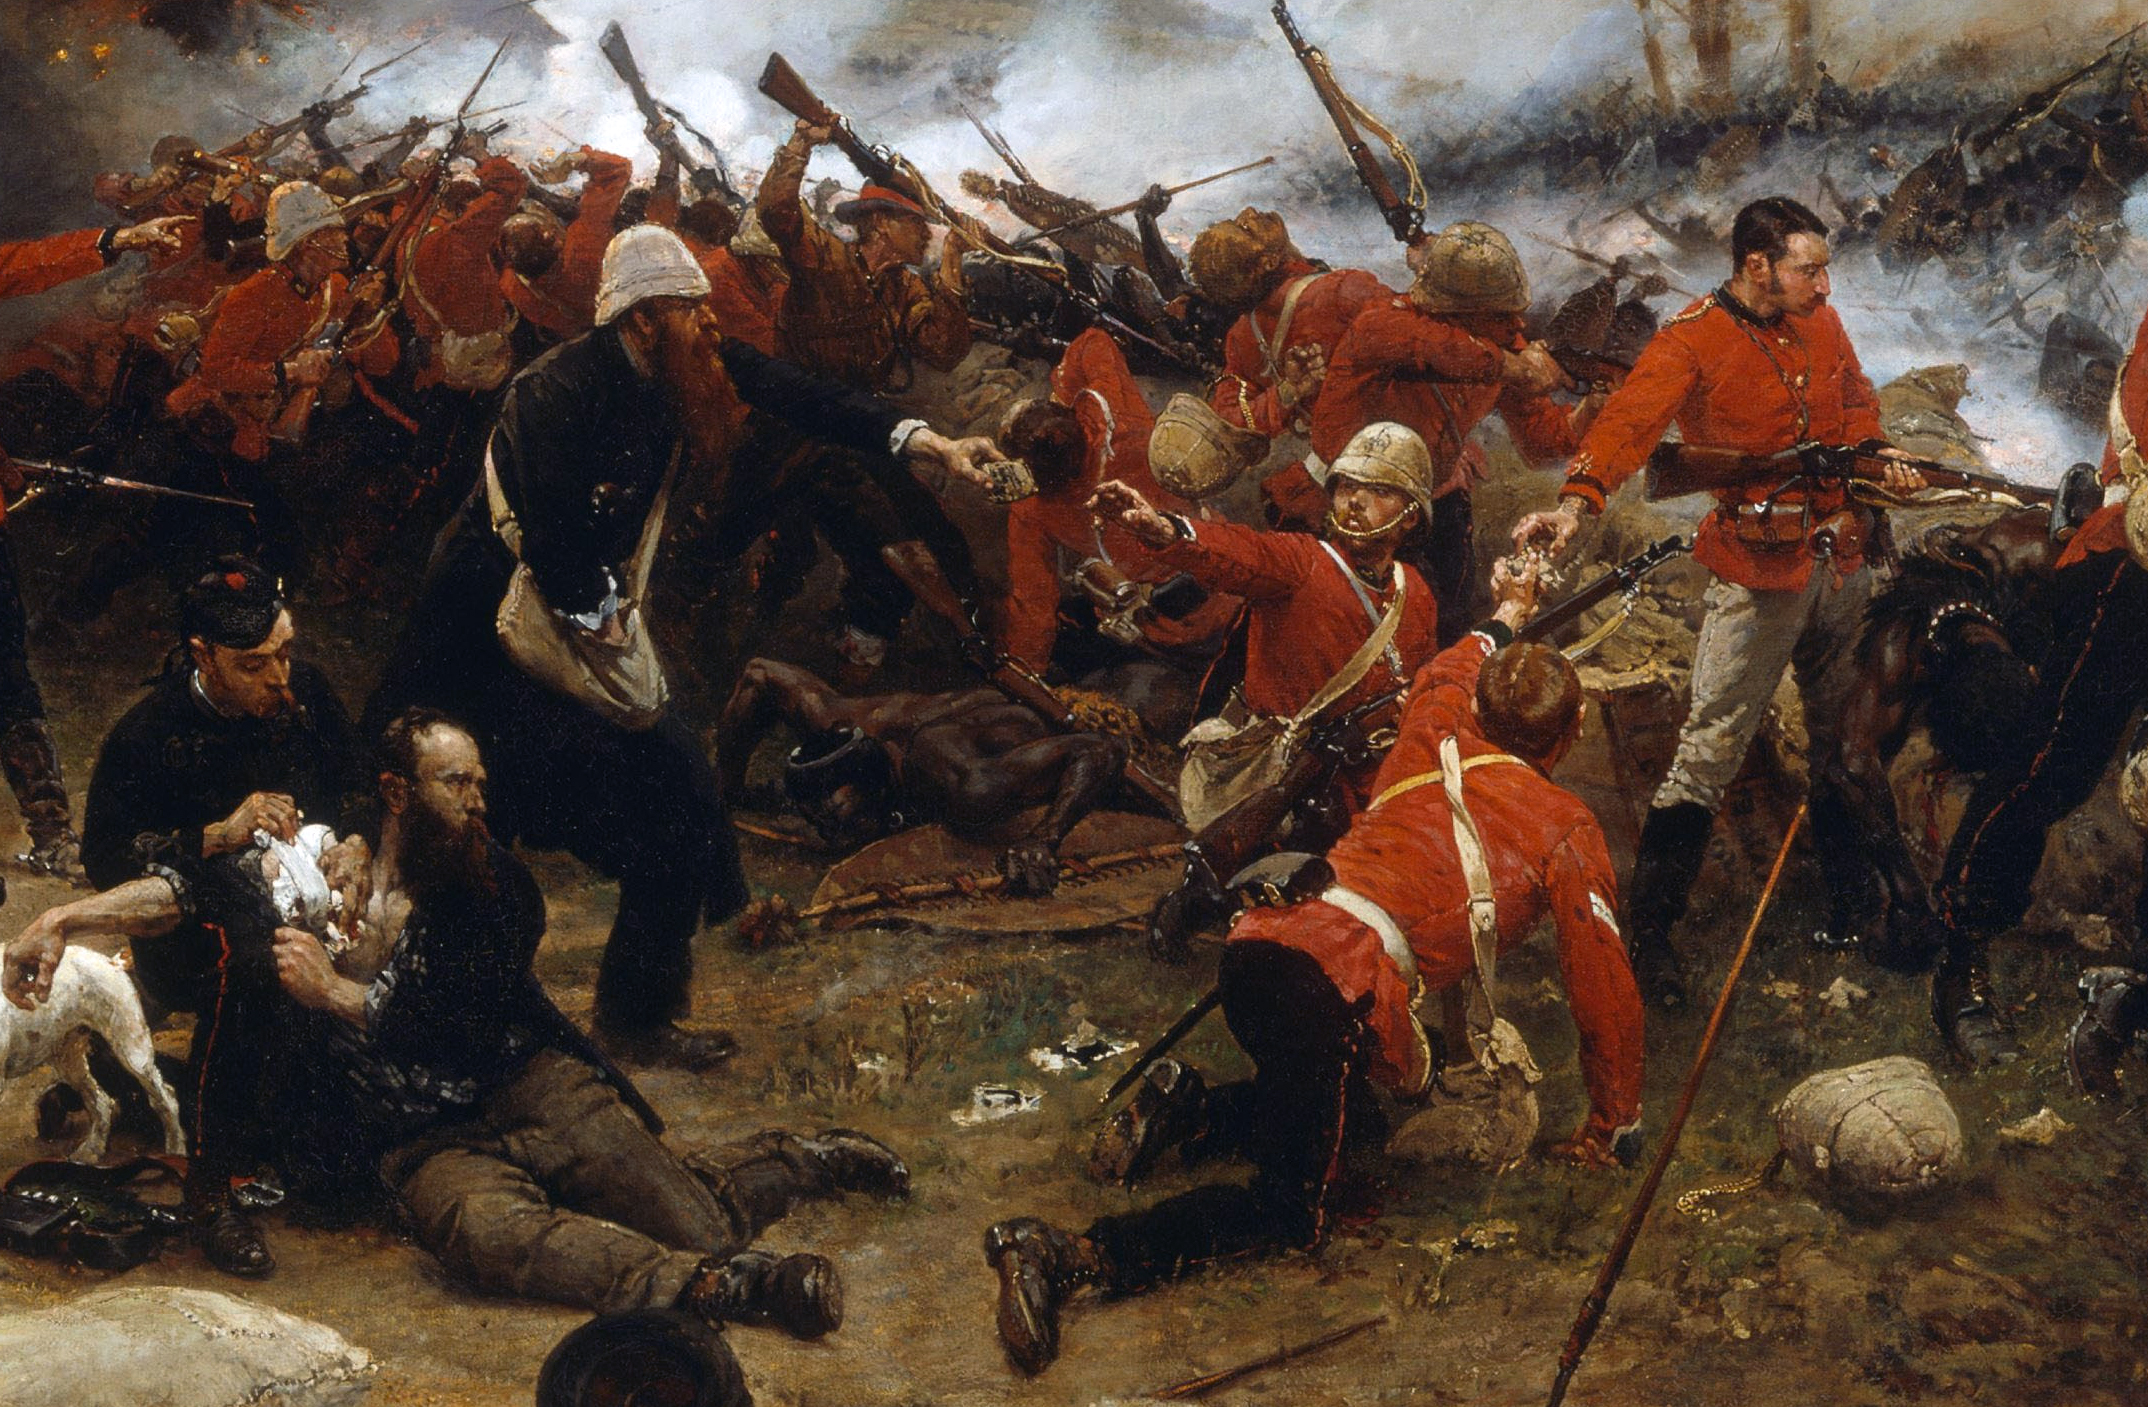 The Battle of Rorke's Drift, 1879.